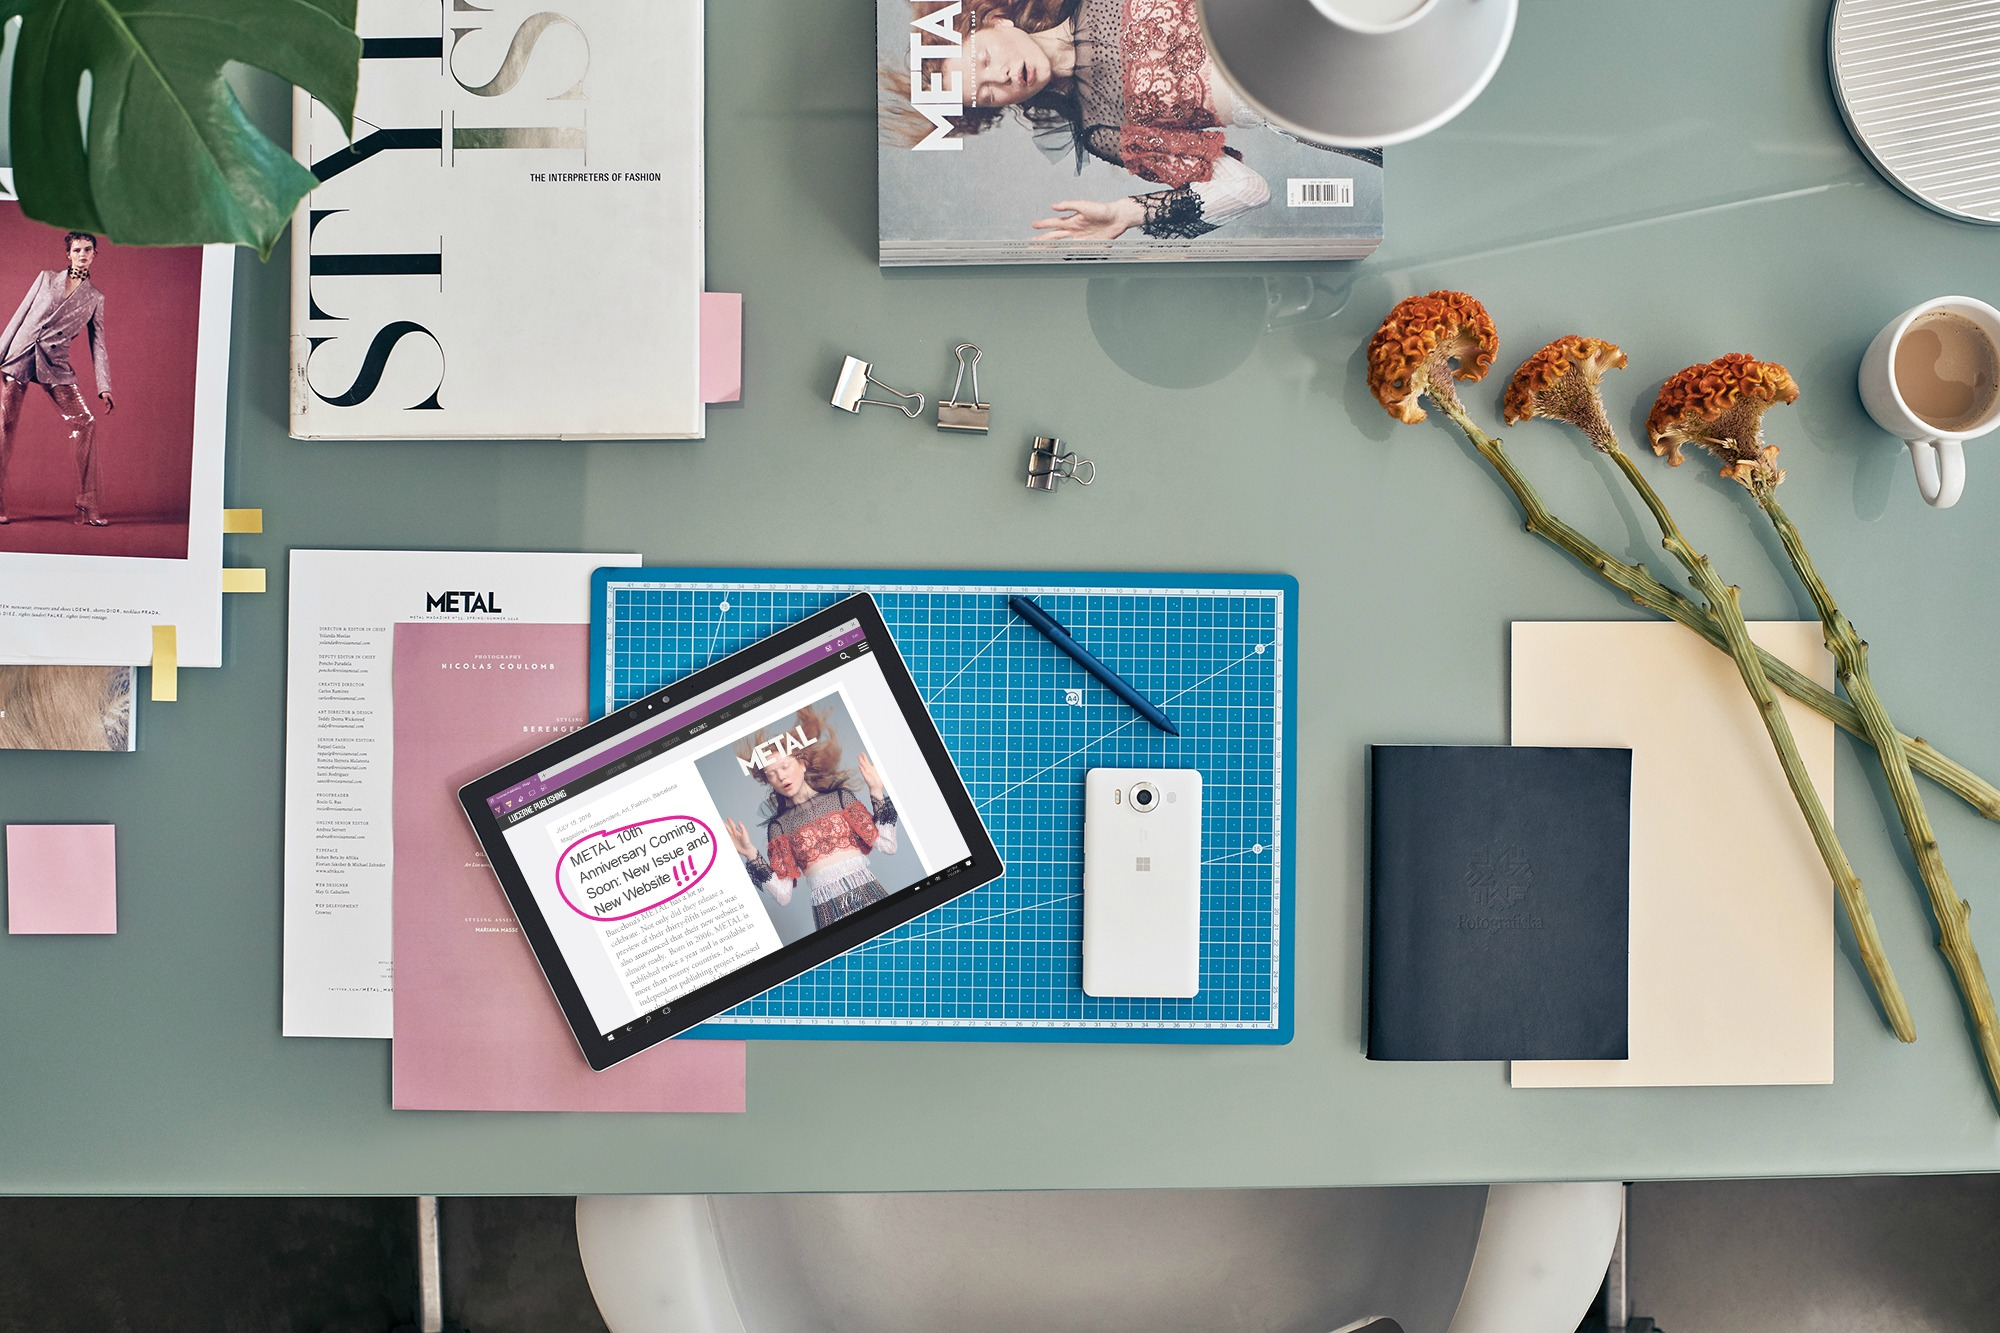 Less Space needed makes the Surface Pro 4 the perfect option to work anywhere.